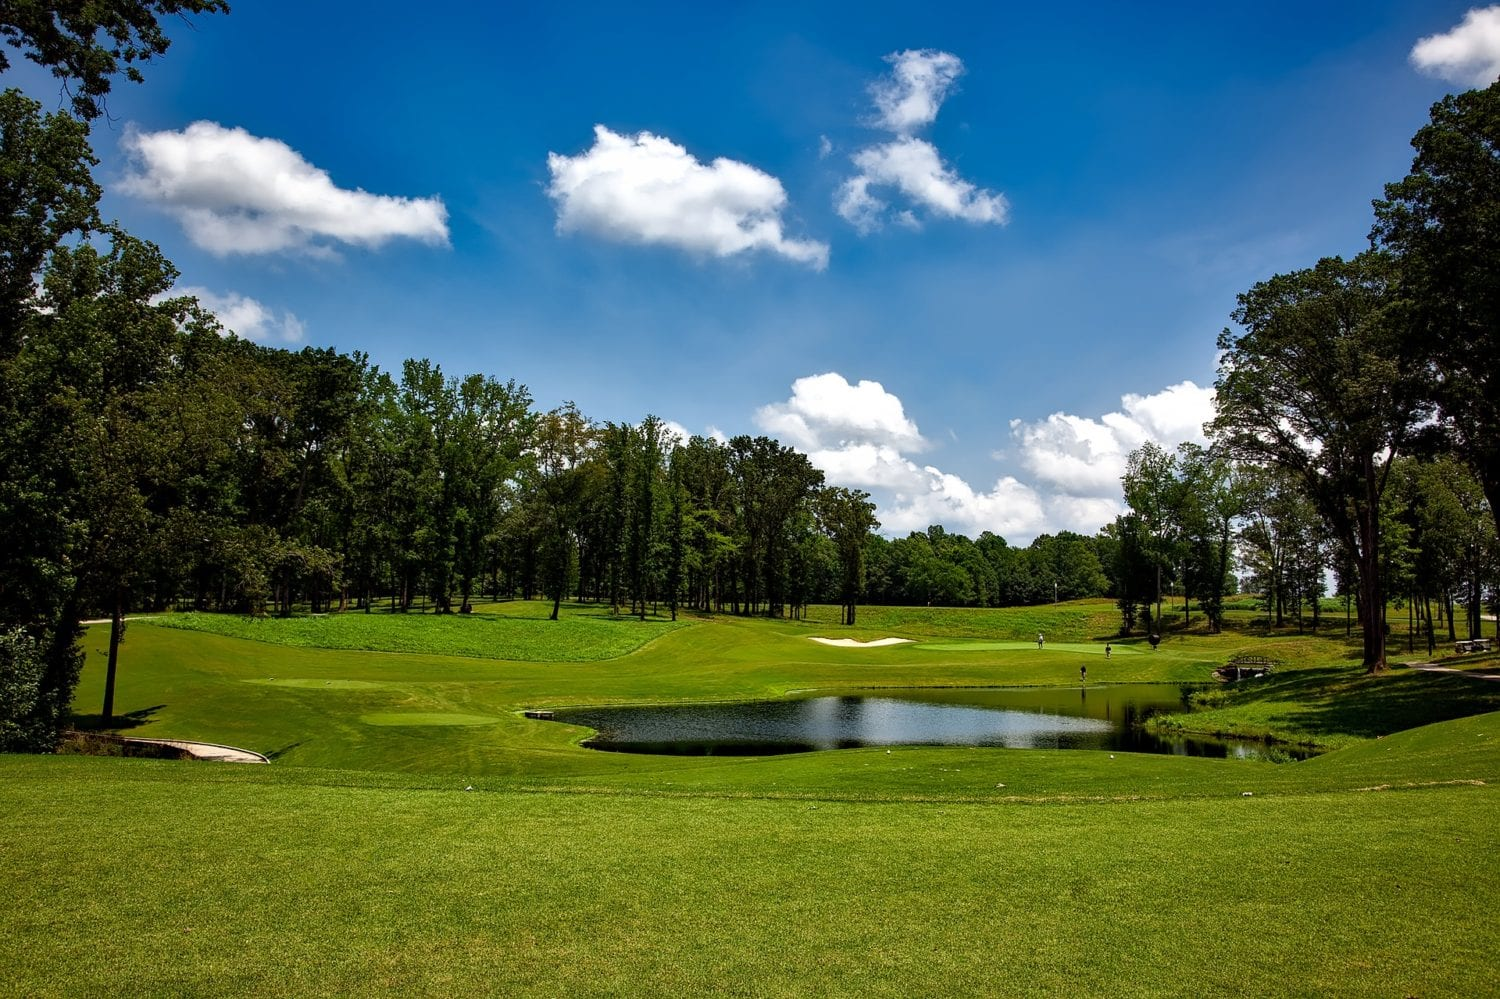 The power of bacteria in pond maintenance on golf courses